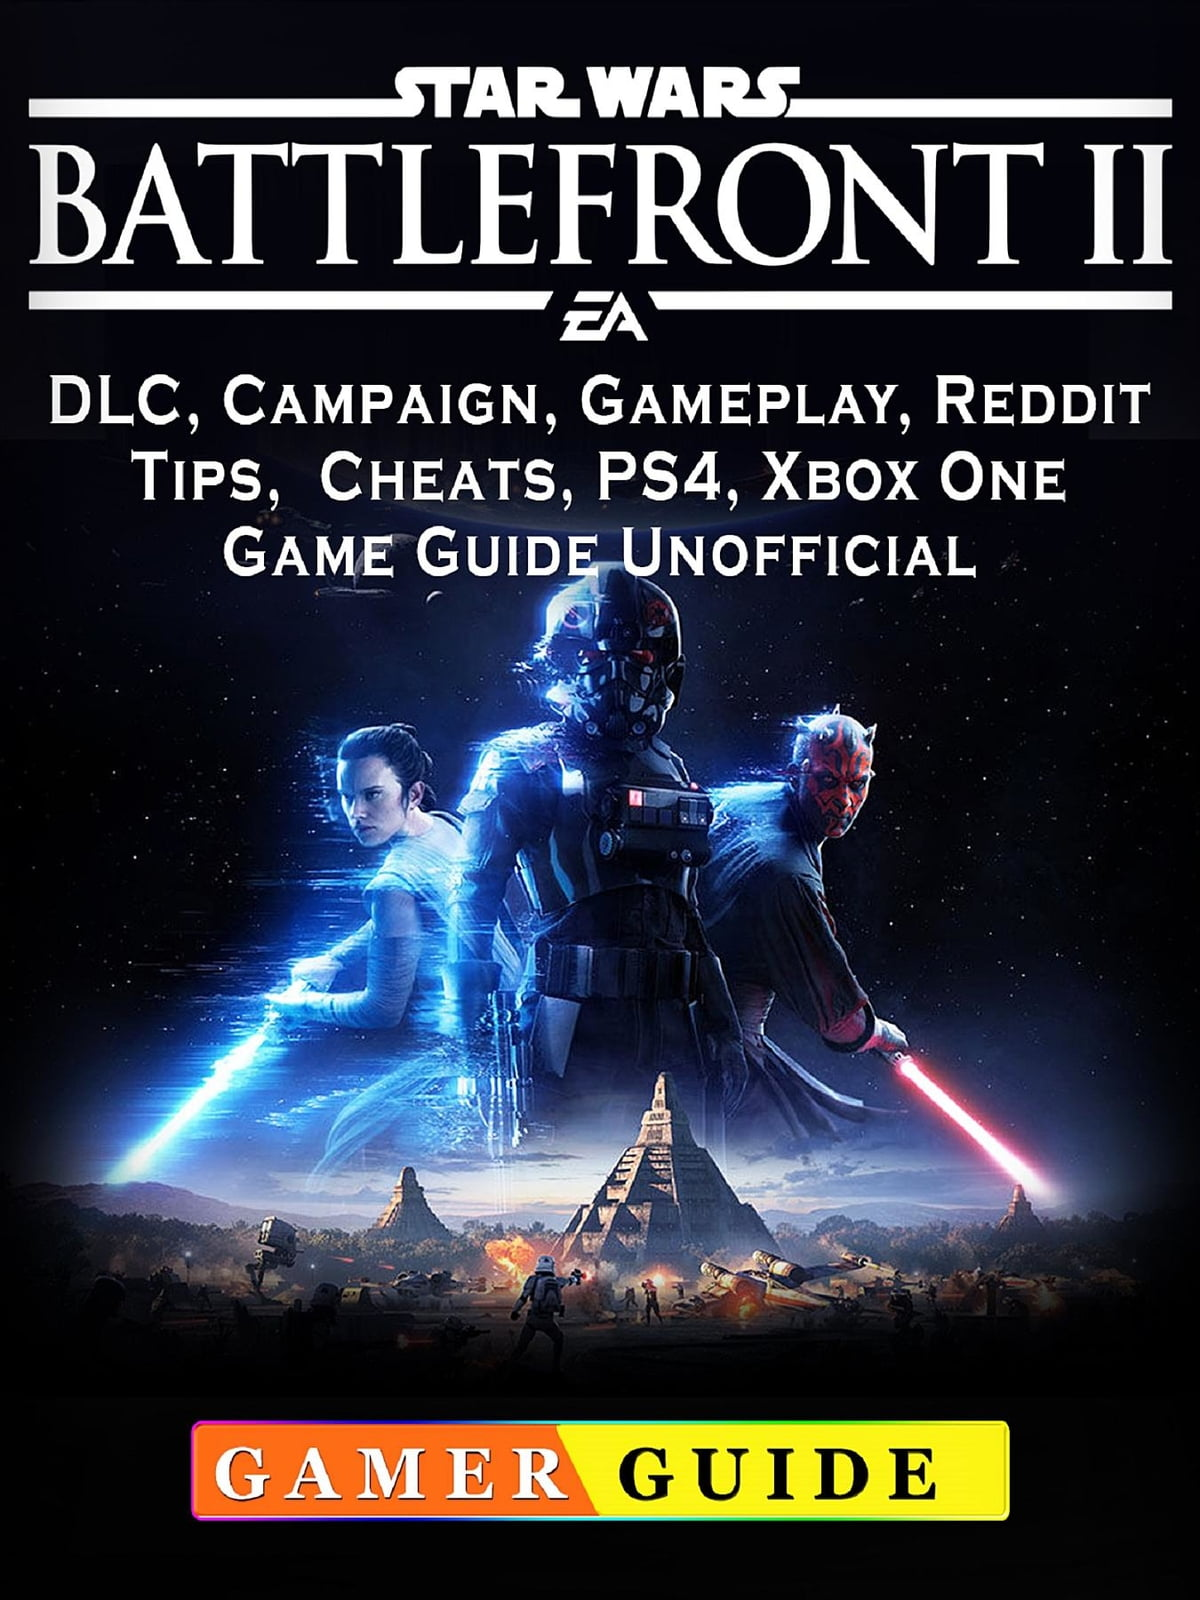 Star Wars Battlefront 2, DLC, Campaign, Gameplay, Reddit, Tips, Cheats,  PS4, Xbox One, Game Guide Unofficial ebook by Gamer Guide - Rakuten Kobo